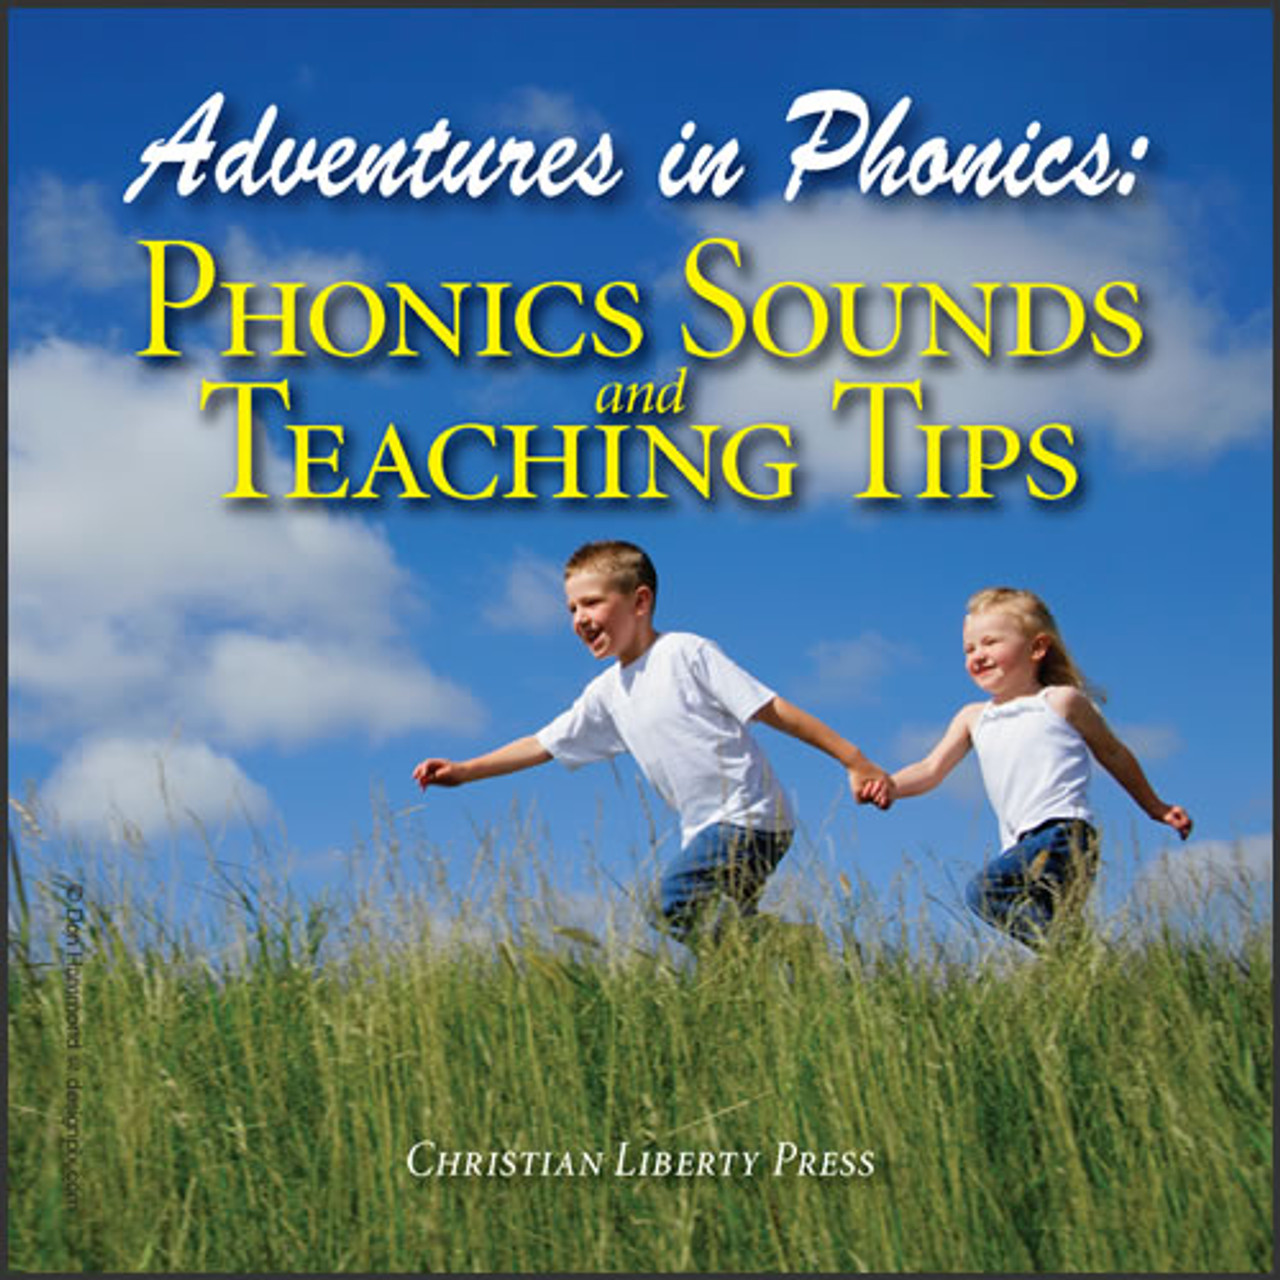 Phonics Sounds and Teaching Tips